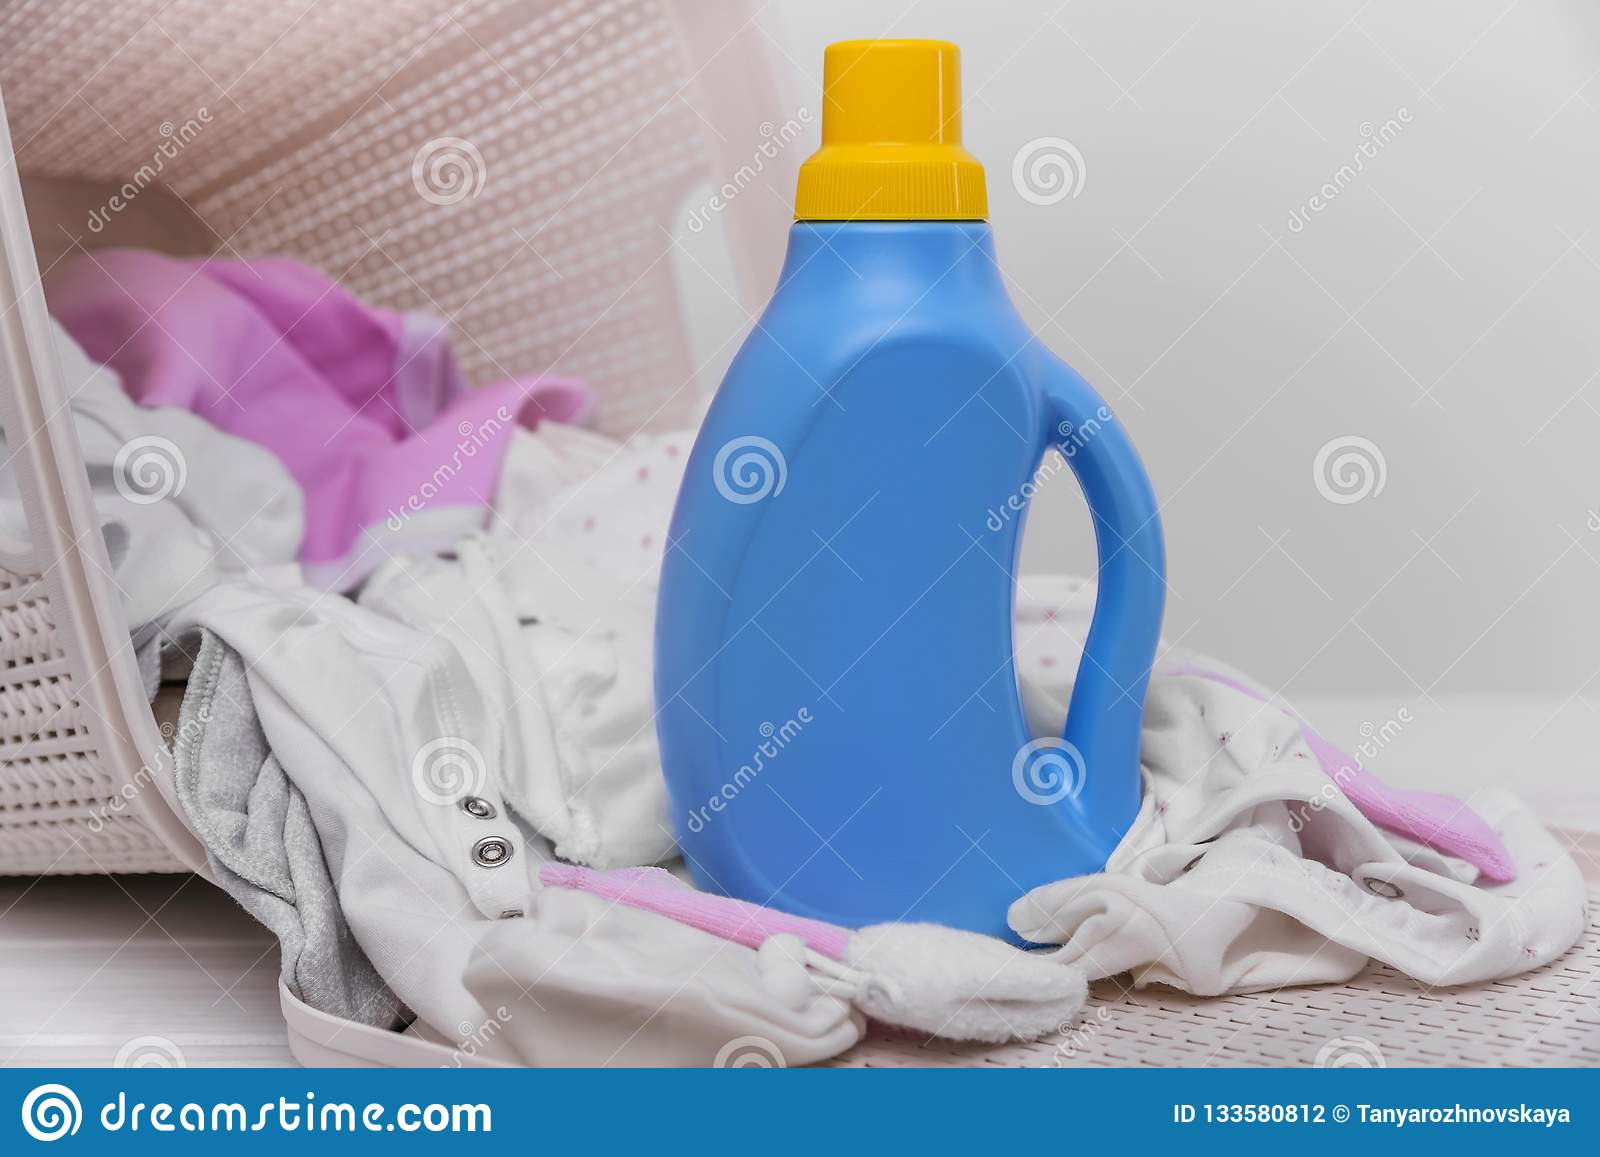 Bottle of laundry detergent in the basket with dirty baby clothes.